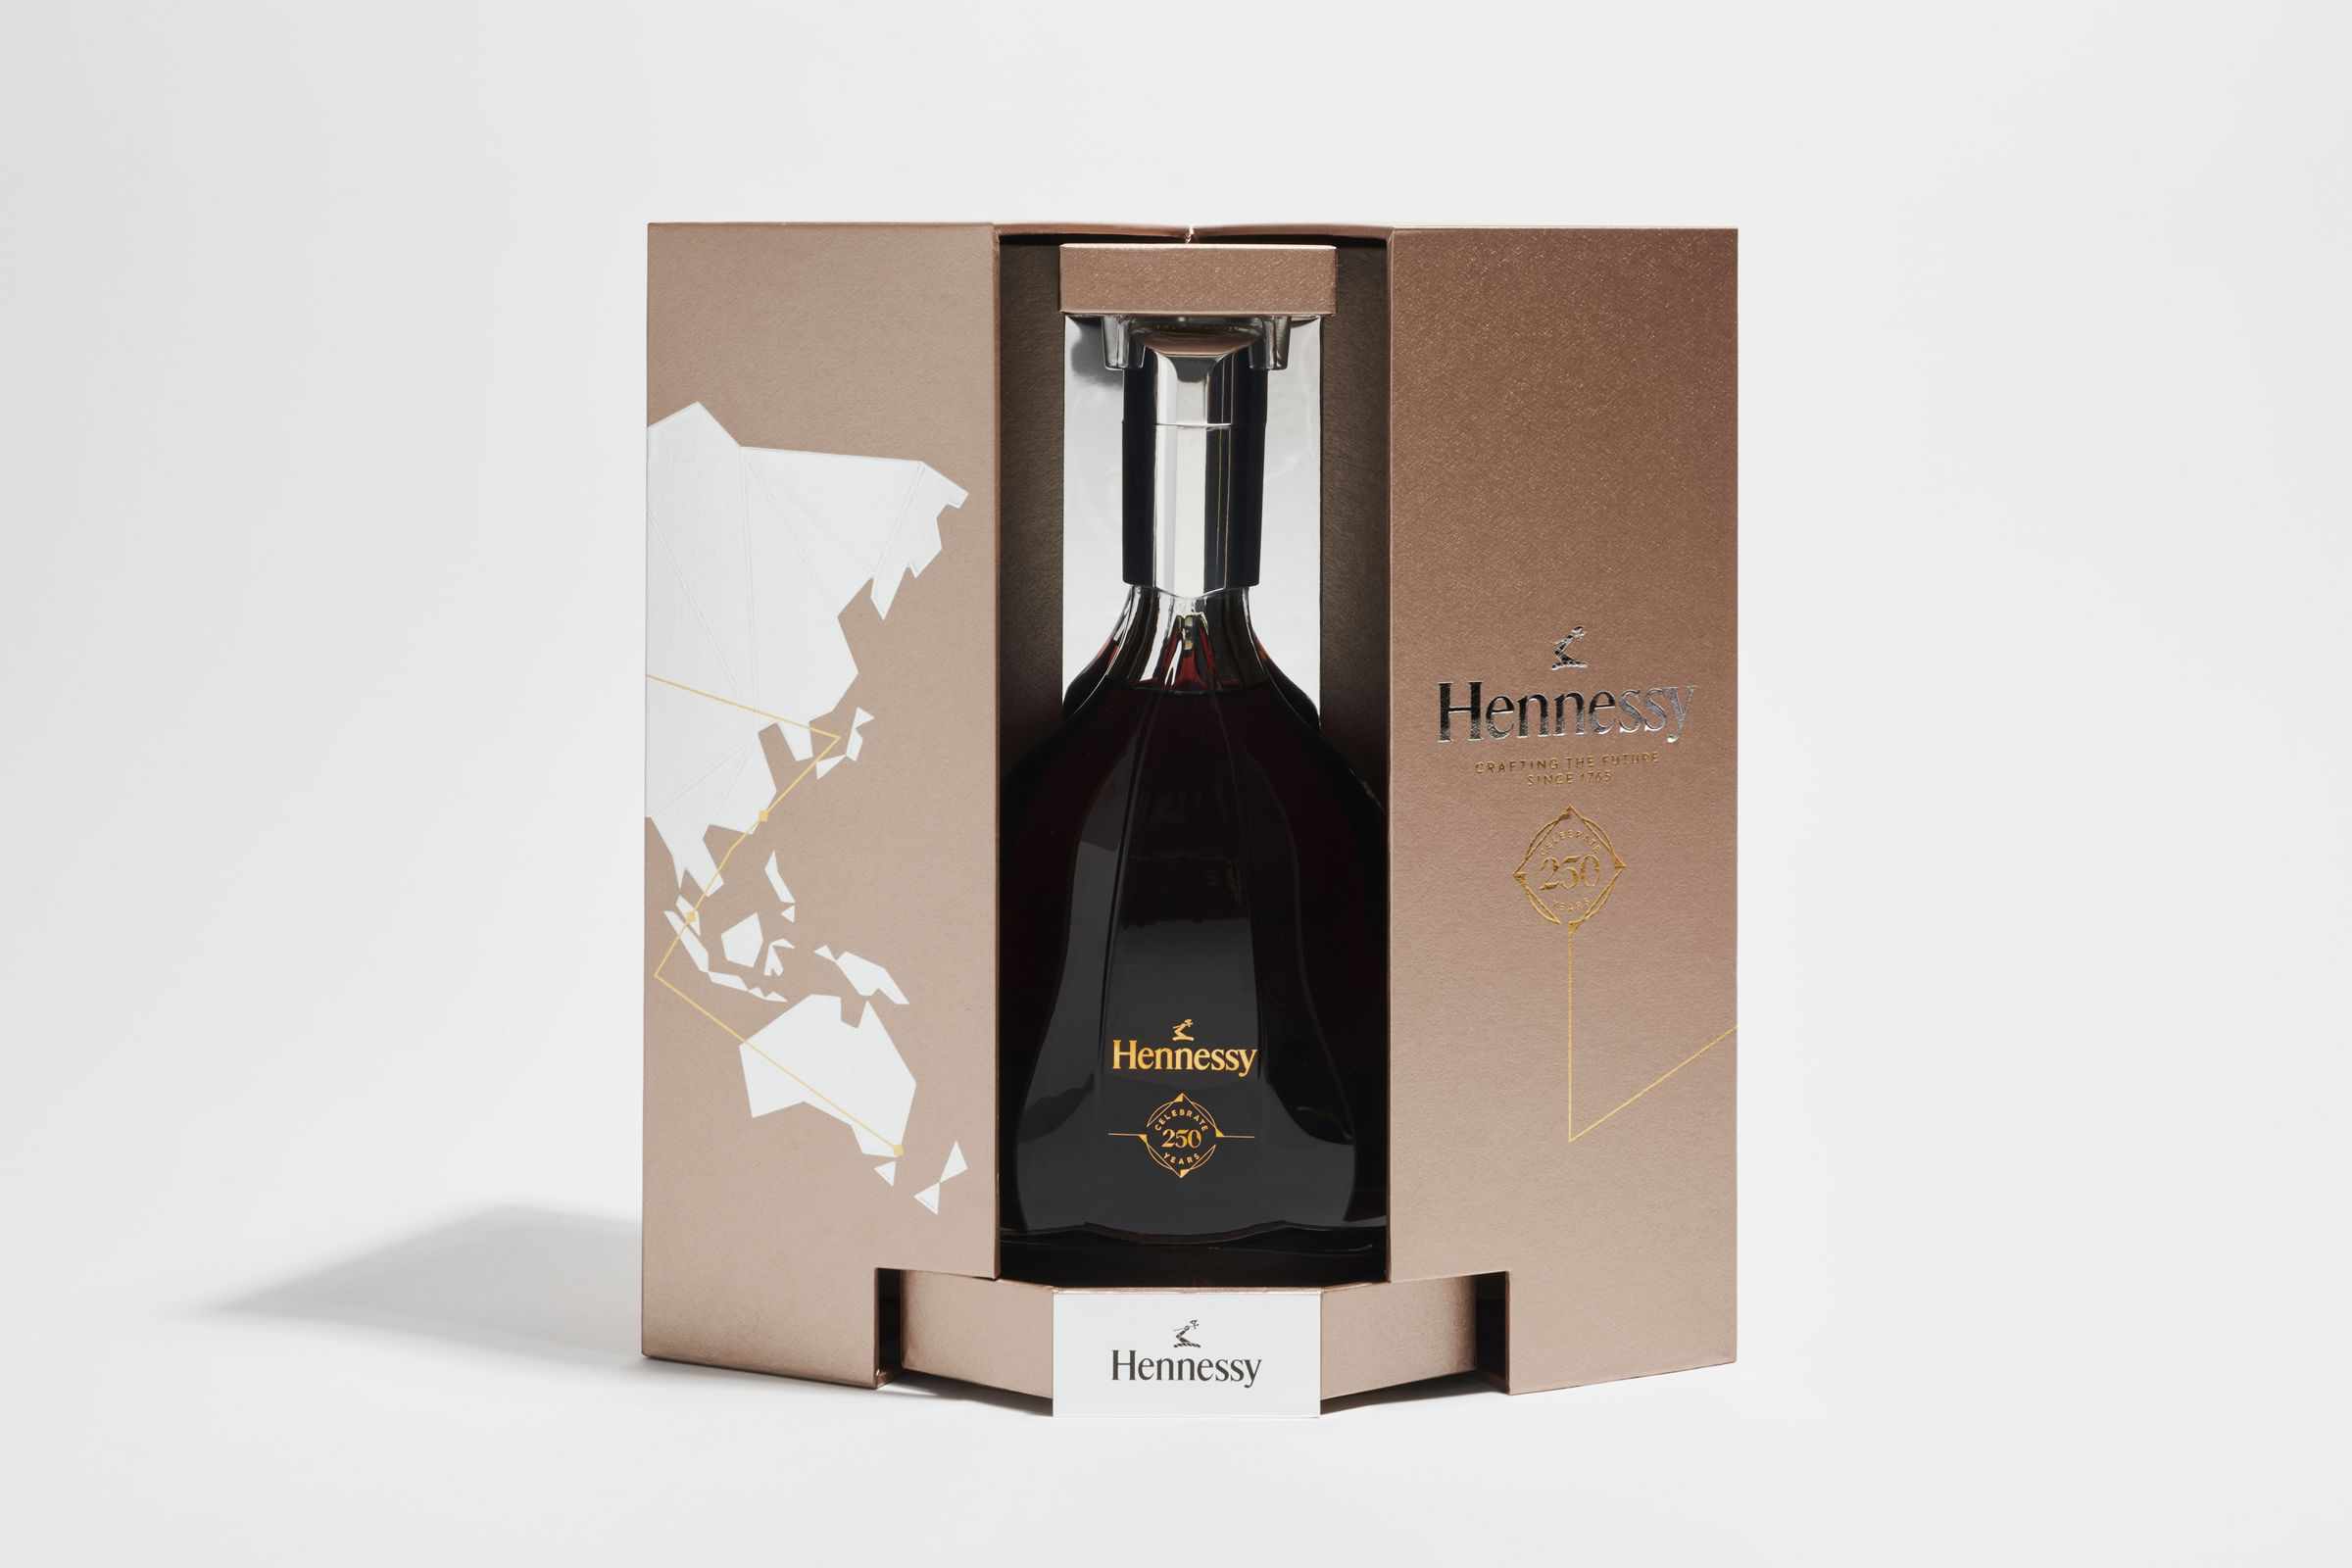 Hennessy 250 anniversary collector's blend box open with logo applied